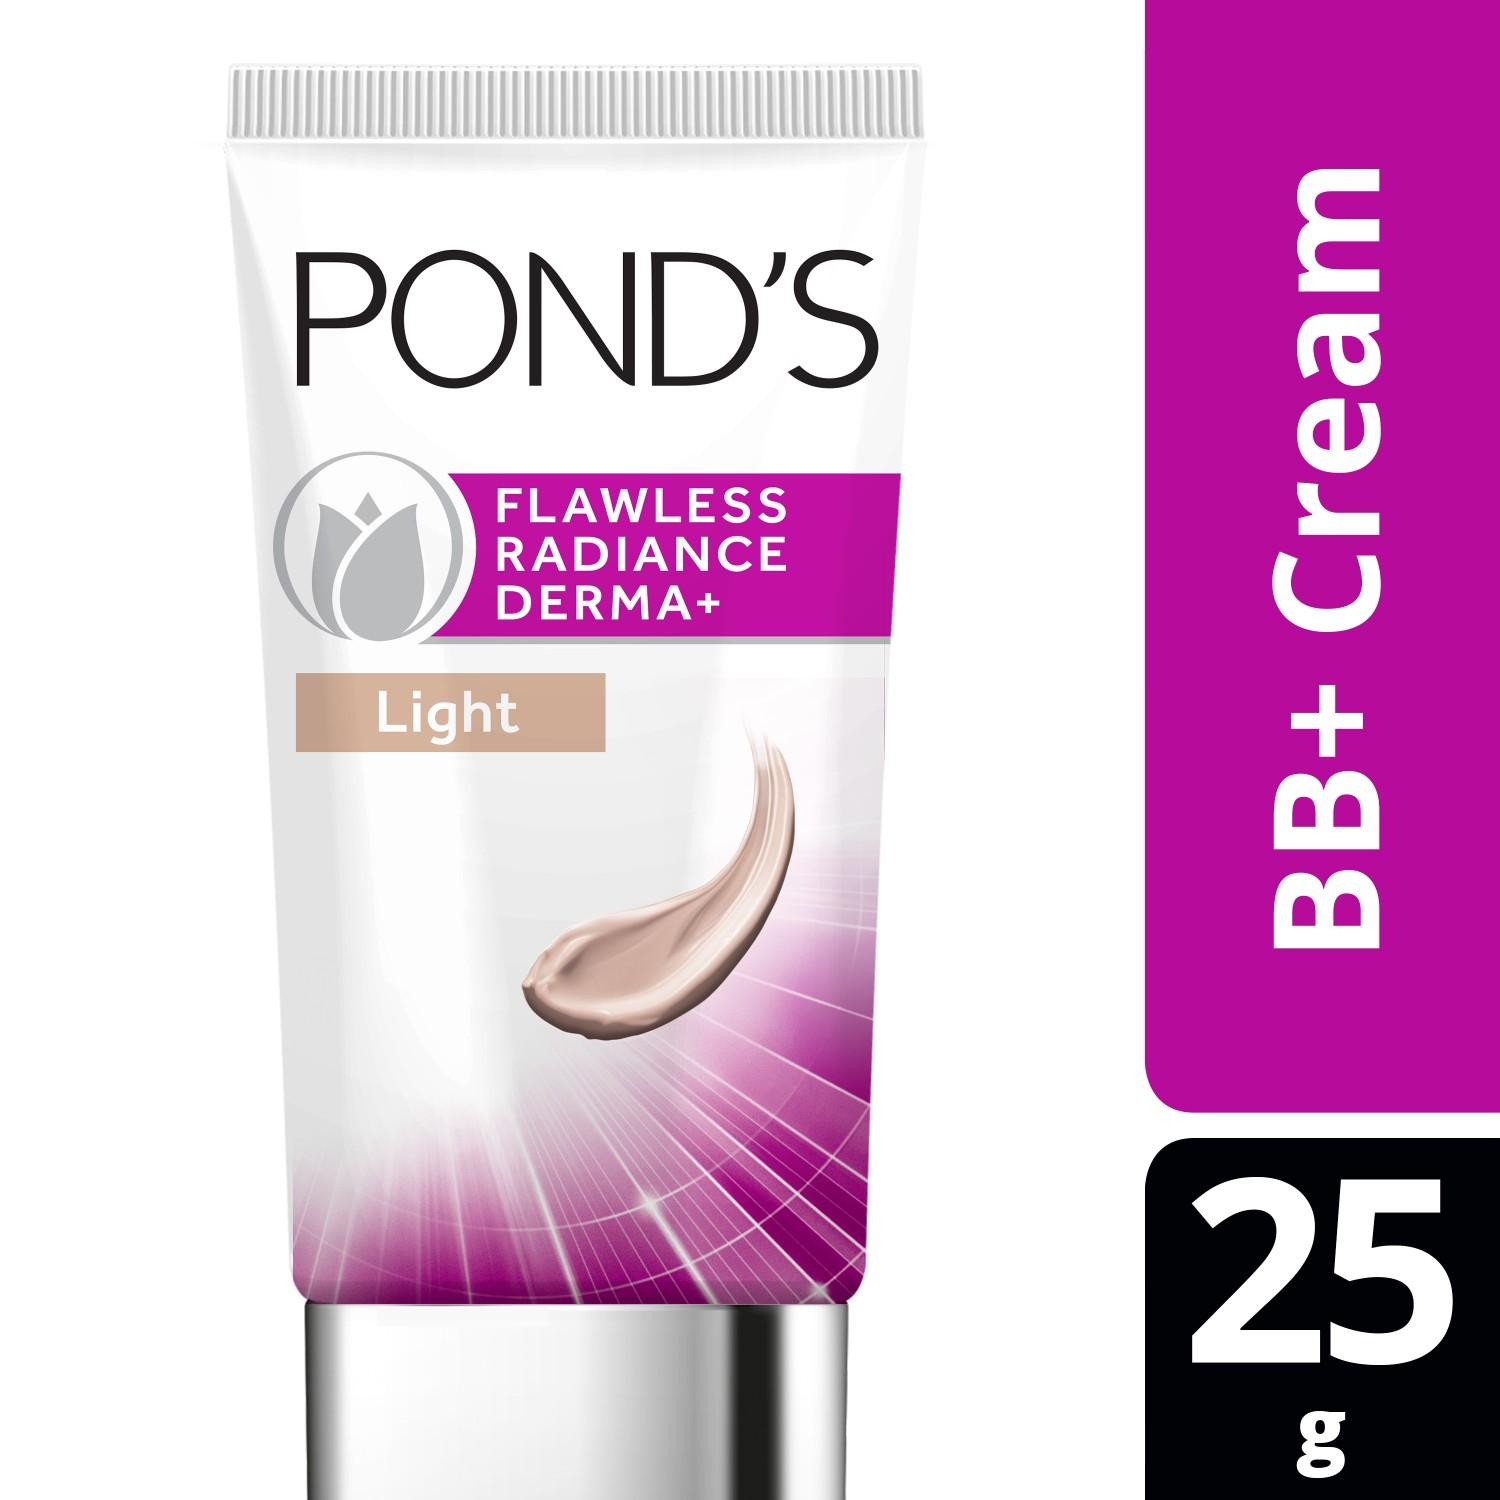 Ponds Philippines Health Beauty Products For Sale Prices Flawless Dewy Rose Gel 50 G Flr Derma Bb Light 25g